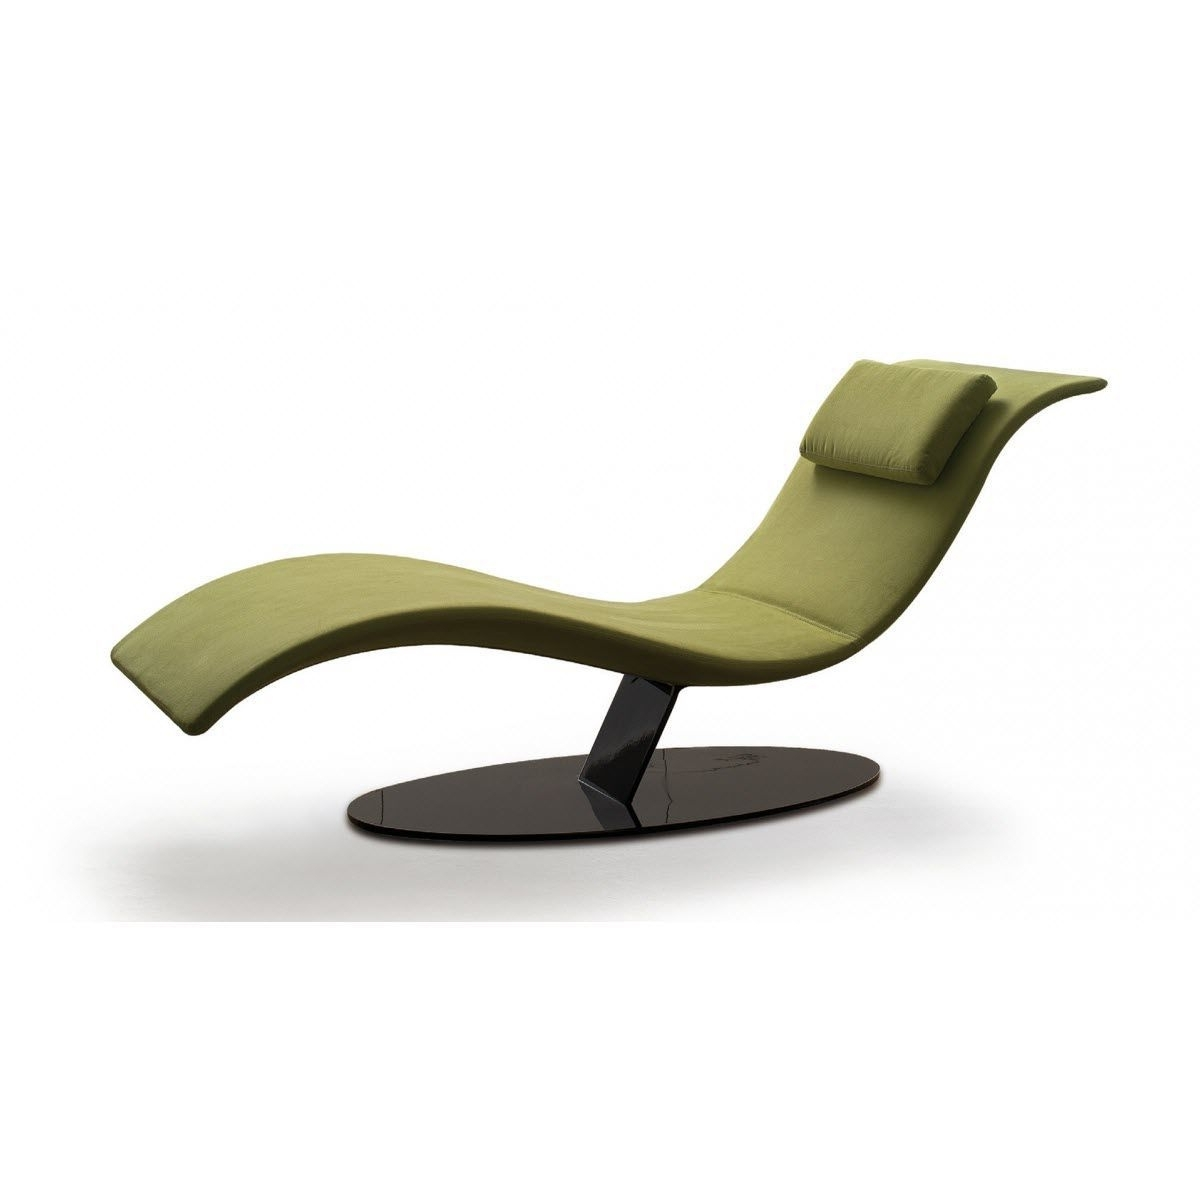 Popular Remarkable Contemporary Lounge Chair Pictures Design Ideas Within Contemporary Chaise Lounge Chairs (View 13 of 15)